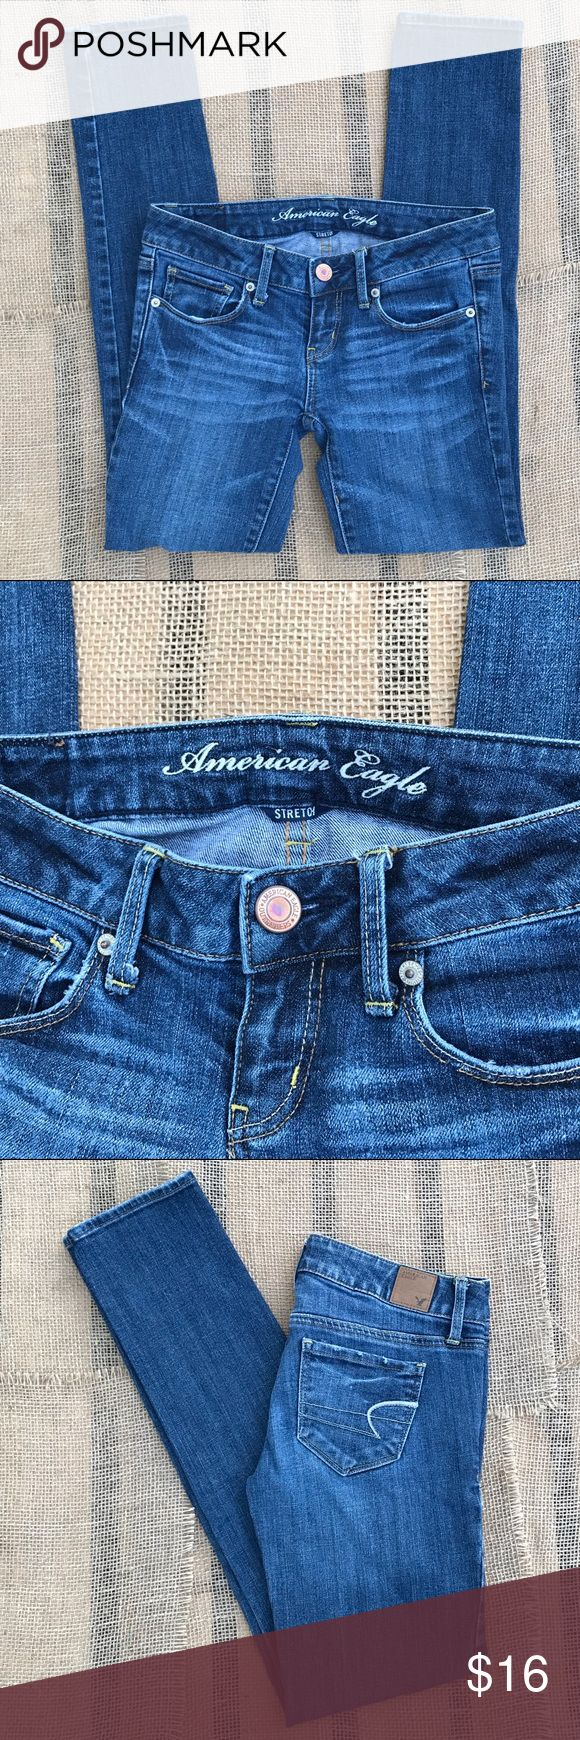 """American Eagle Skinny Jeans EUC, AEO Skinny Stretch Jeans size 0 Short. Inseam: 30"""" ❌ I DO NOT MODEL OR TRADE! Price IS firm unless bundled. American Eagle Outfitters Jeans Skinny"""